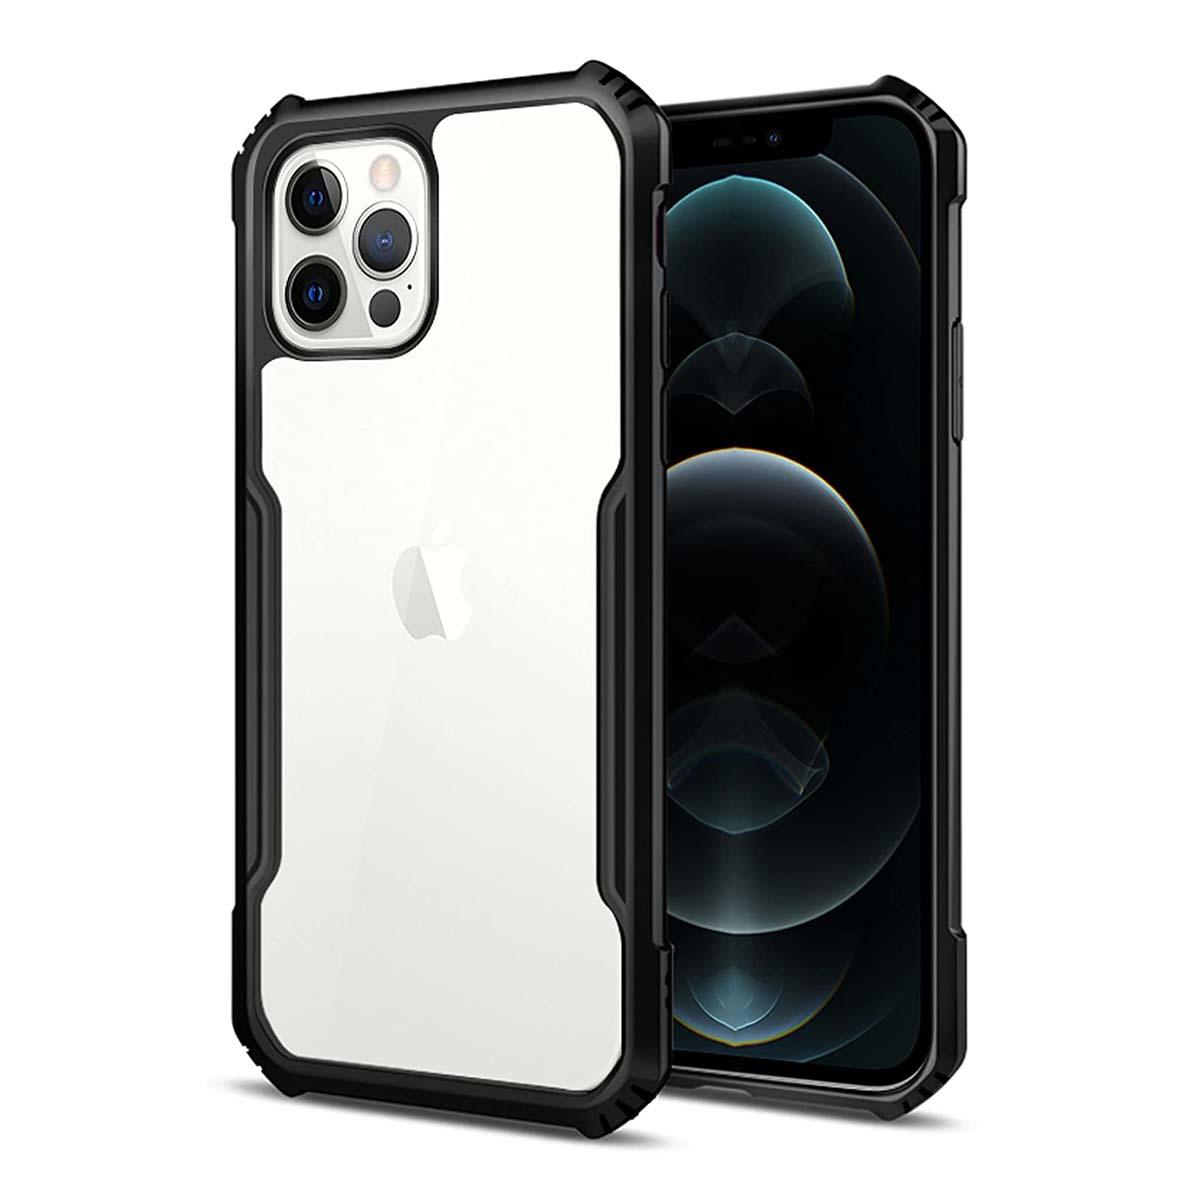 Xundd Back Cover Case for iPhone 12 Pro